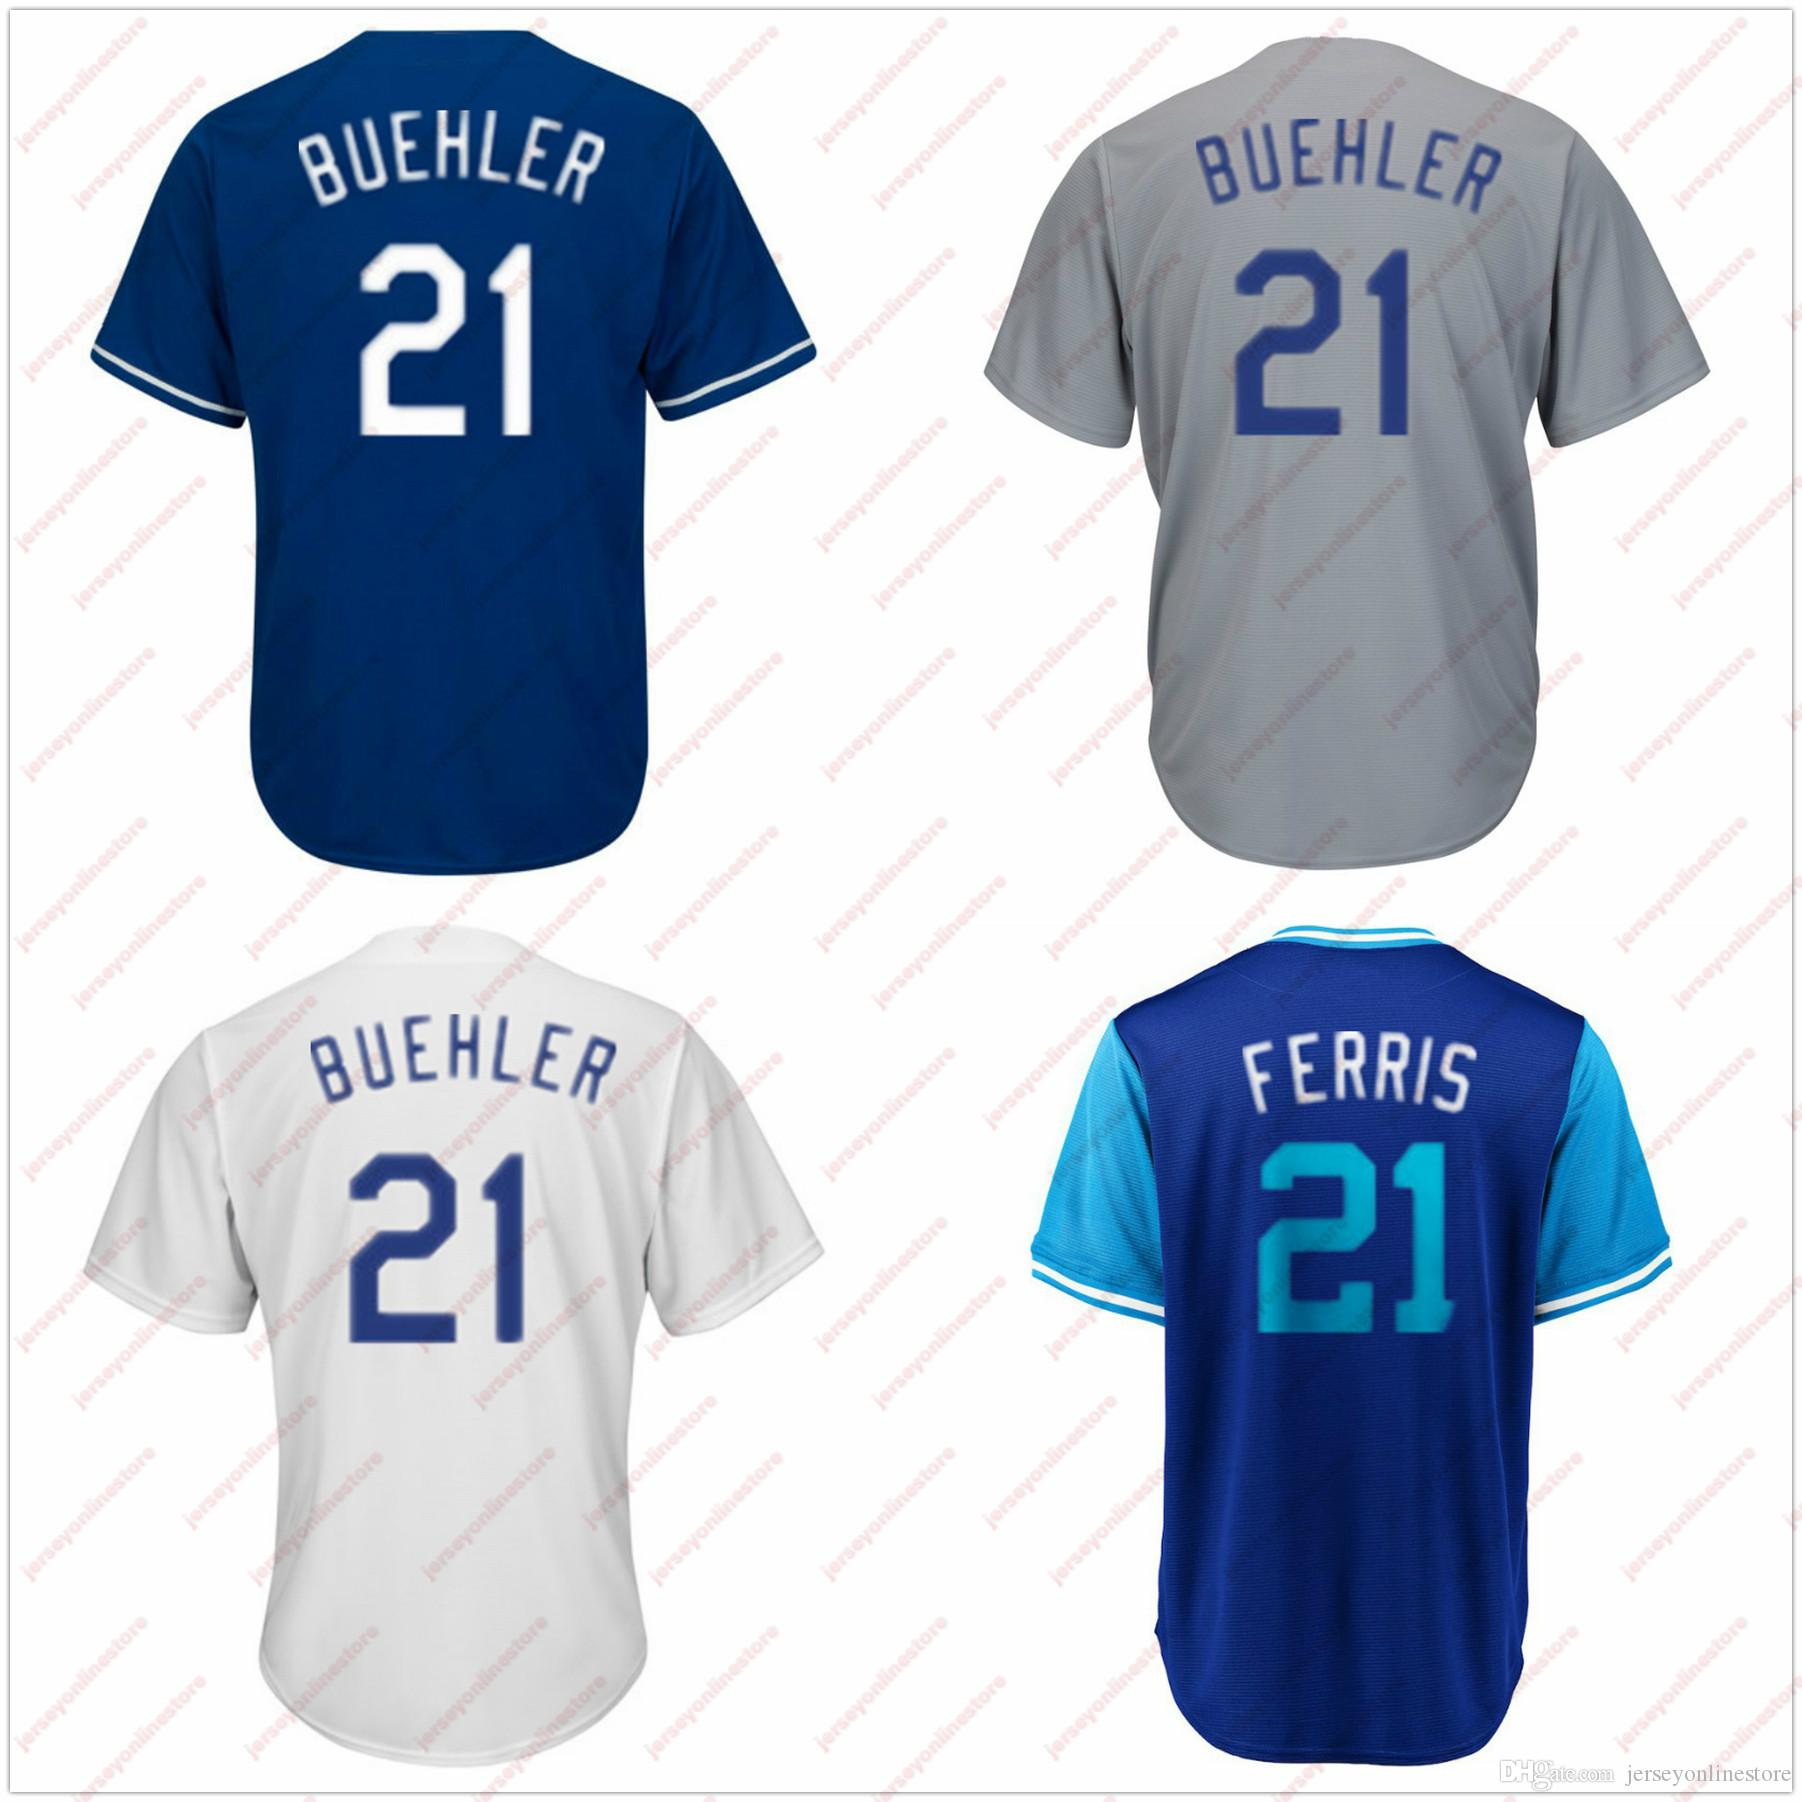 c146d6aeb 2019 Men Women Youth Los Angeles 21 Walker Buehler Jersey Stitched Blue  Gray White FERRIS Players Weekend Baseball Jerseys Sewn On From  Jerseyonlinestore, ...